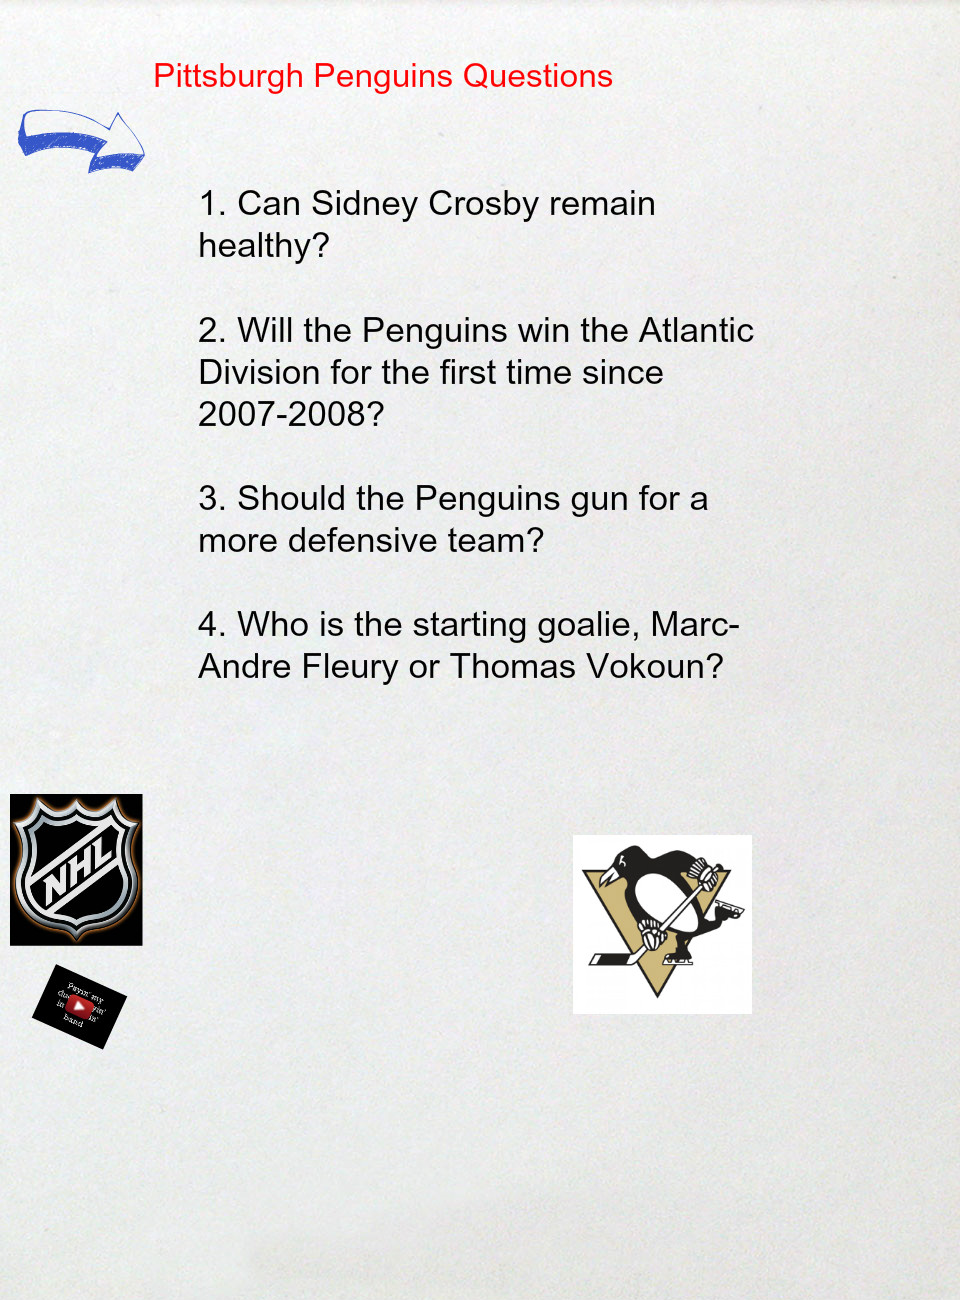 Pittsburgh Penguins Questions's thumbnail